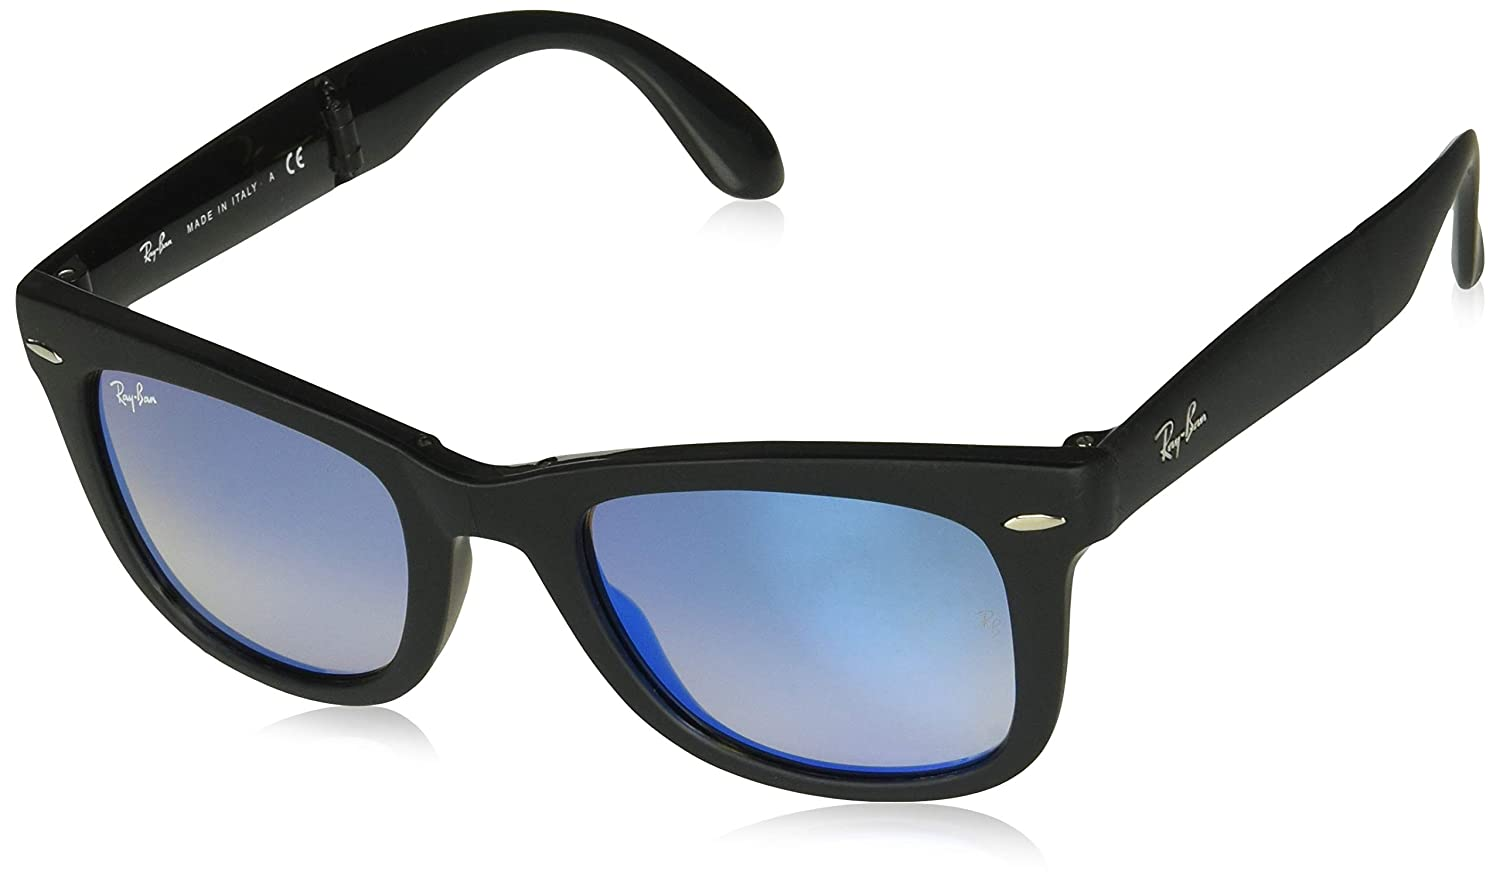 0aac1abc535 Amazon.com  Ray-Ban Men s Folding Wayfarer Sunglasses